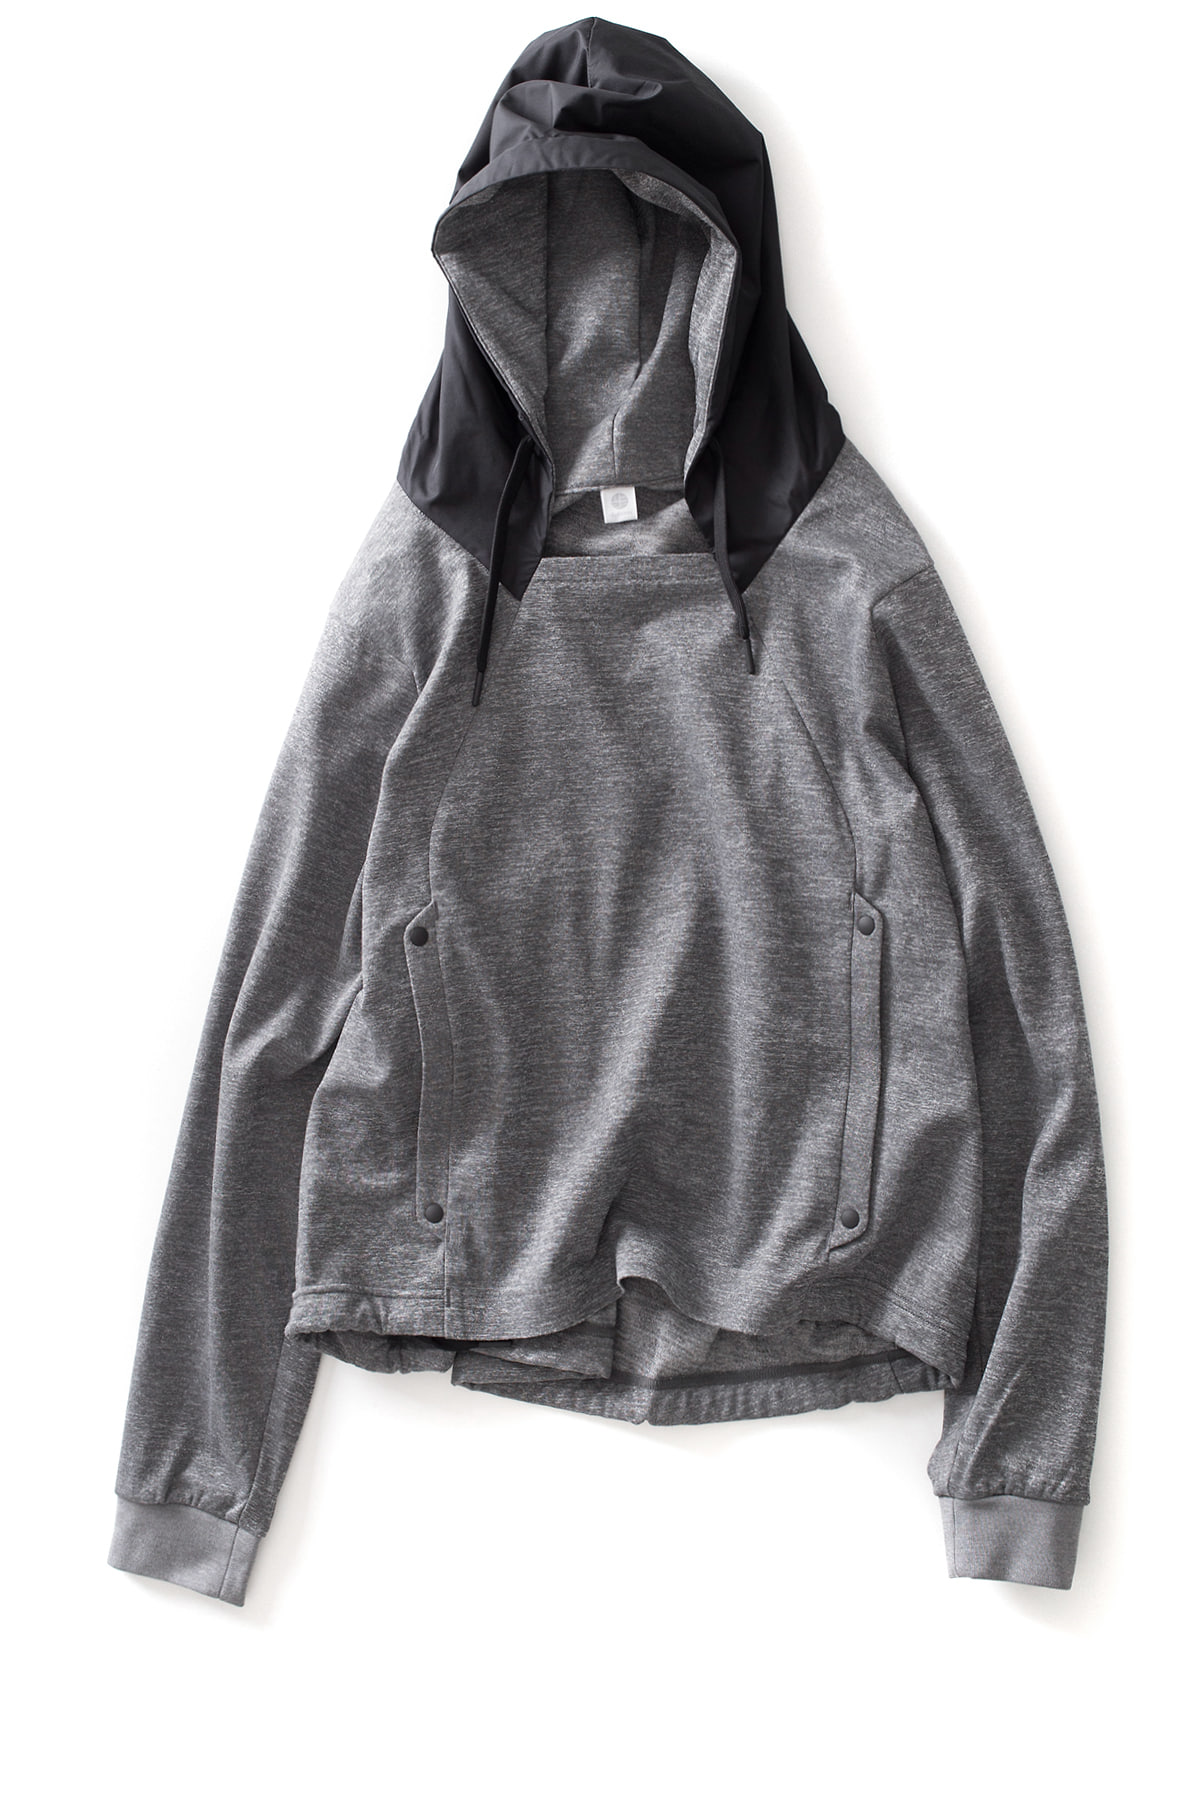 alk phenix : Tab Poncho / Reflector Heather (Grey)